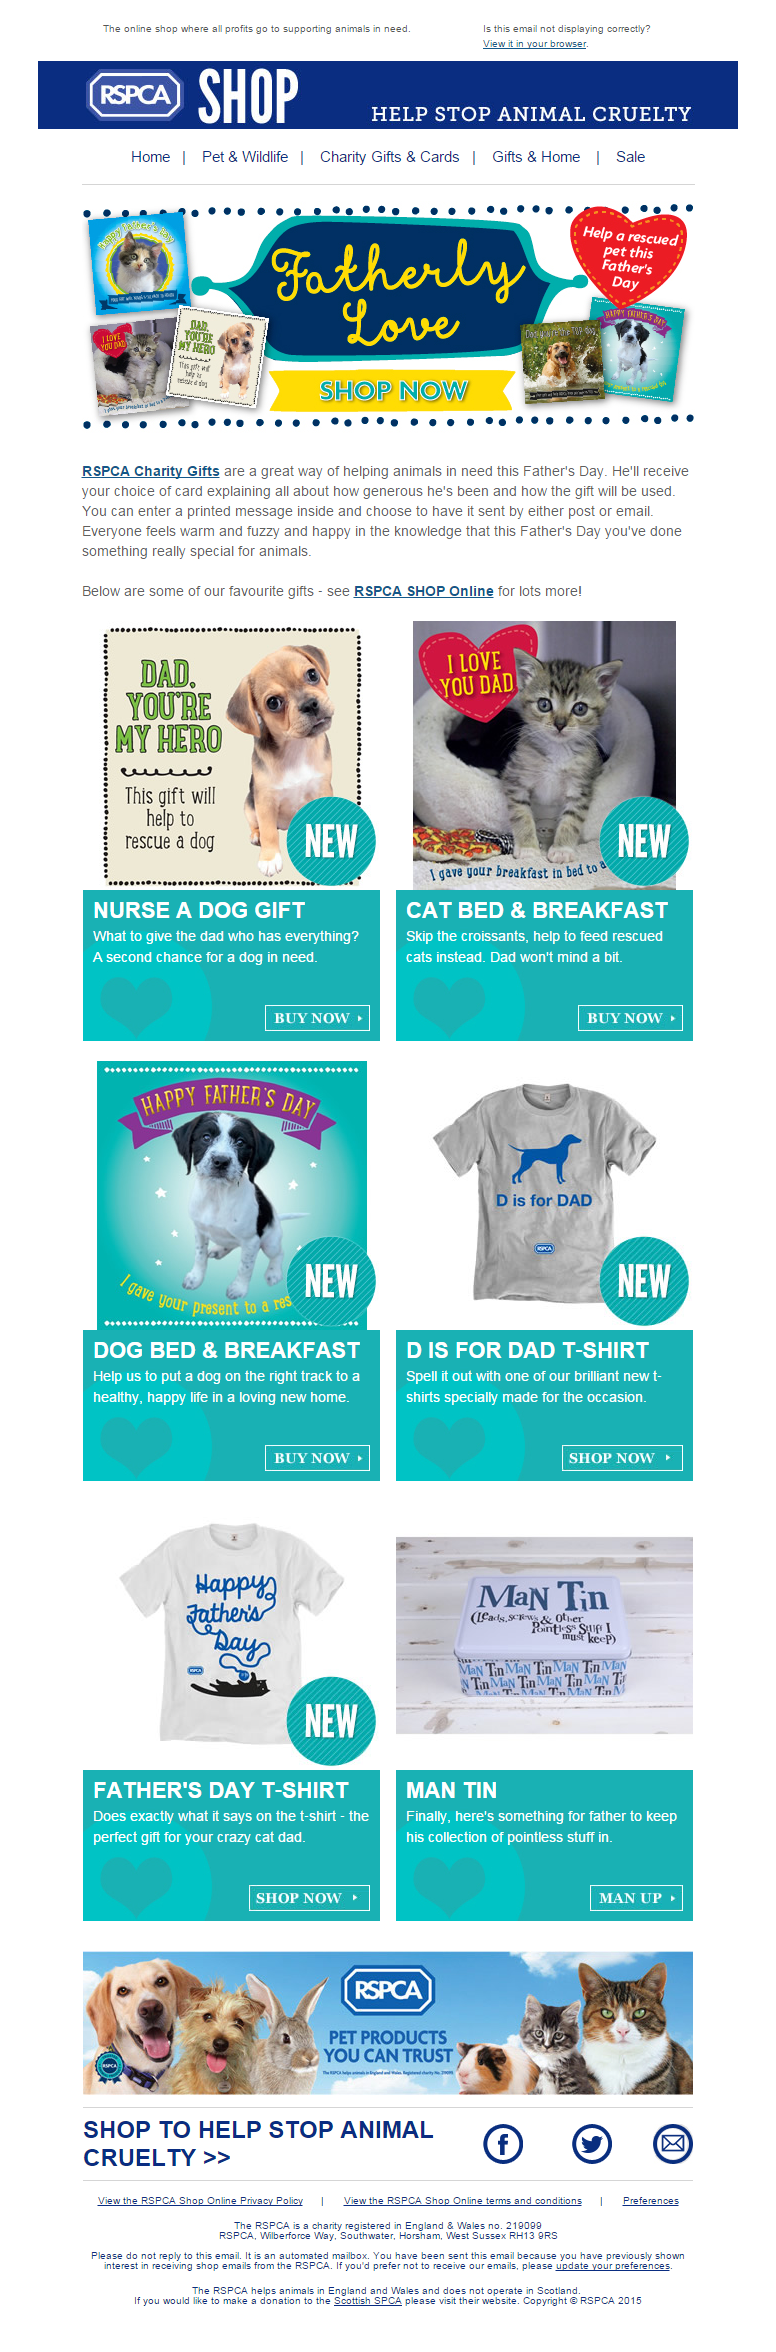 RSPCA Shop Online Fundraising, Pet photographer, Charity